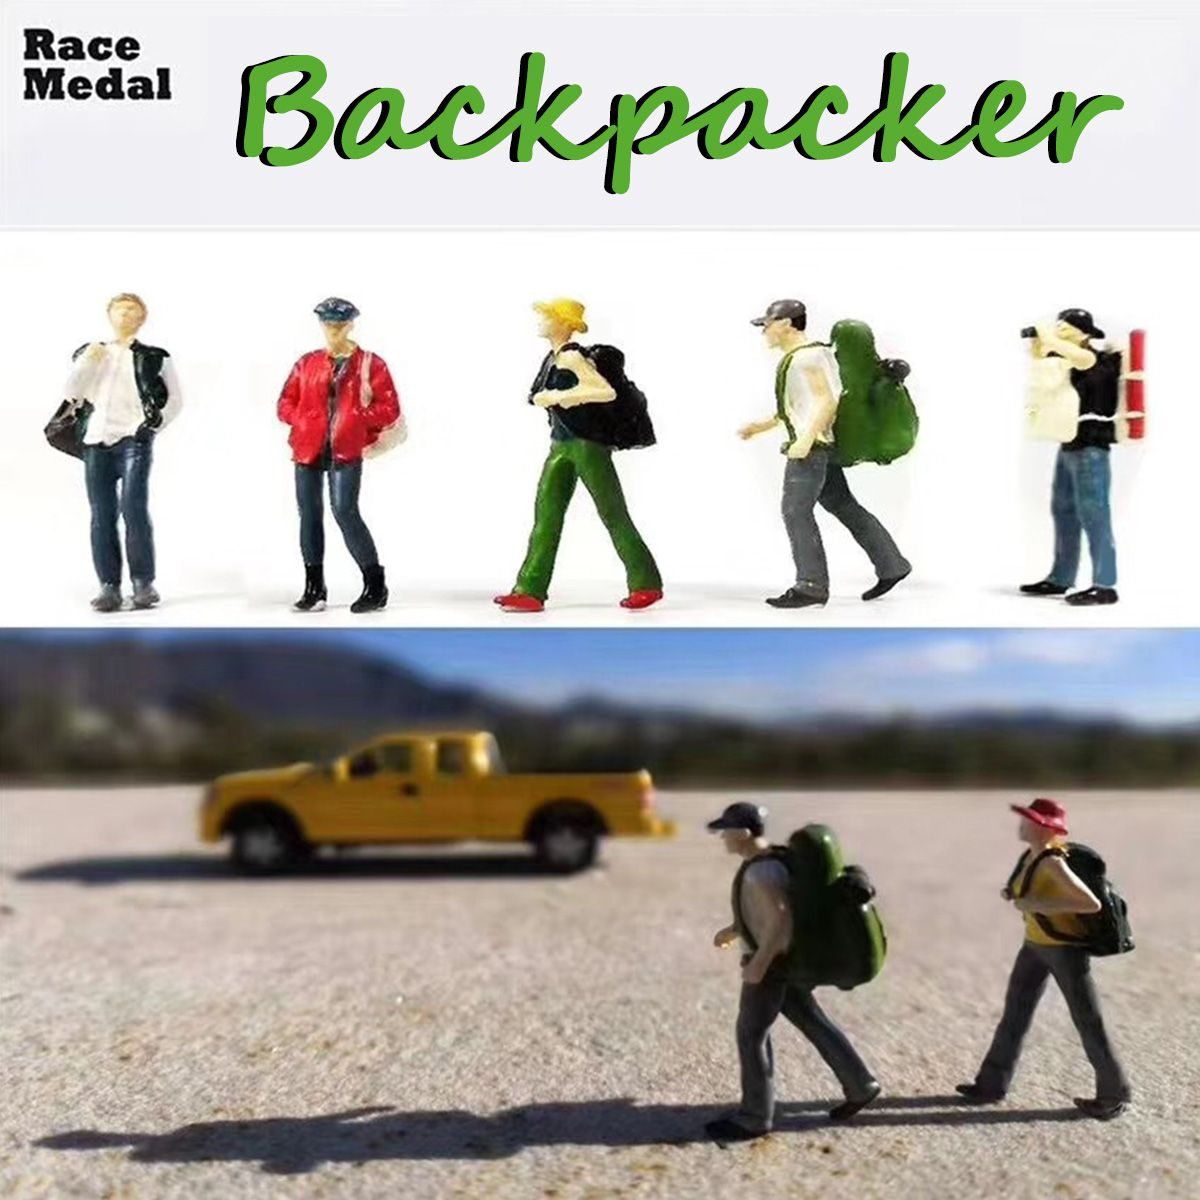 1:64 Scale Figure Backpacker People Group Scenario Model Set For Race Medal Matchbox Children Toy Group People Model